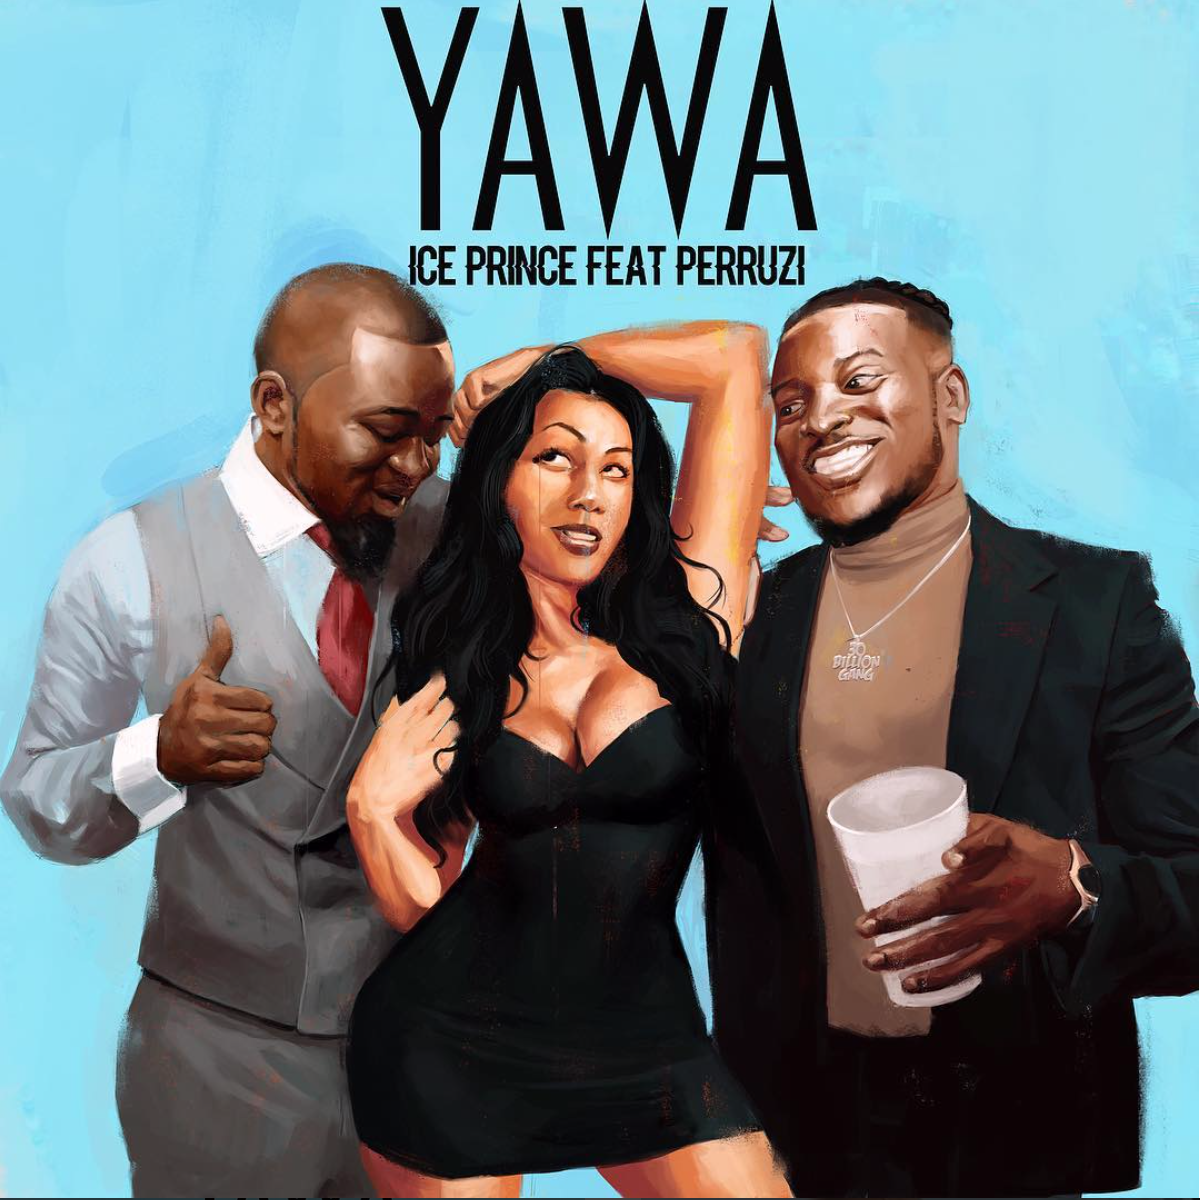 New Music: Ice Prince – Yawa ft. Peruzzi (Prod. Fresh)